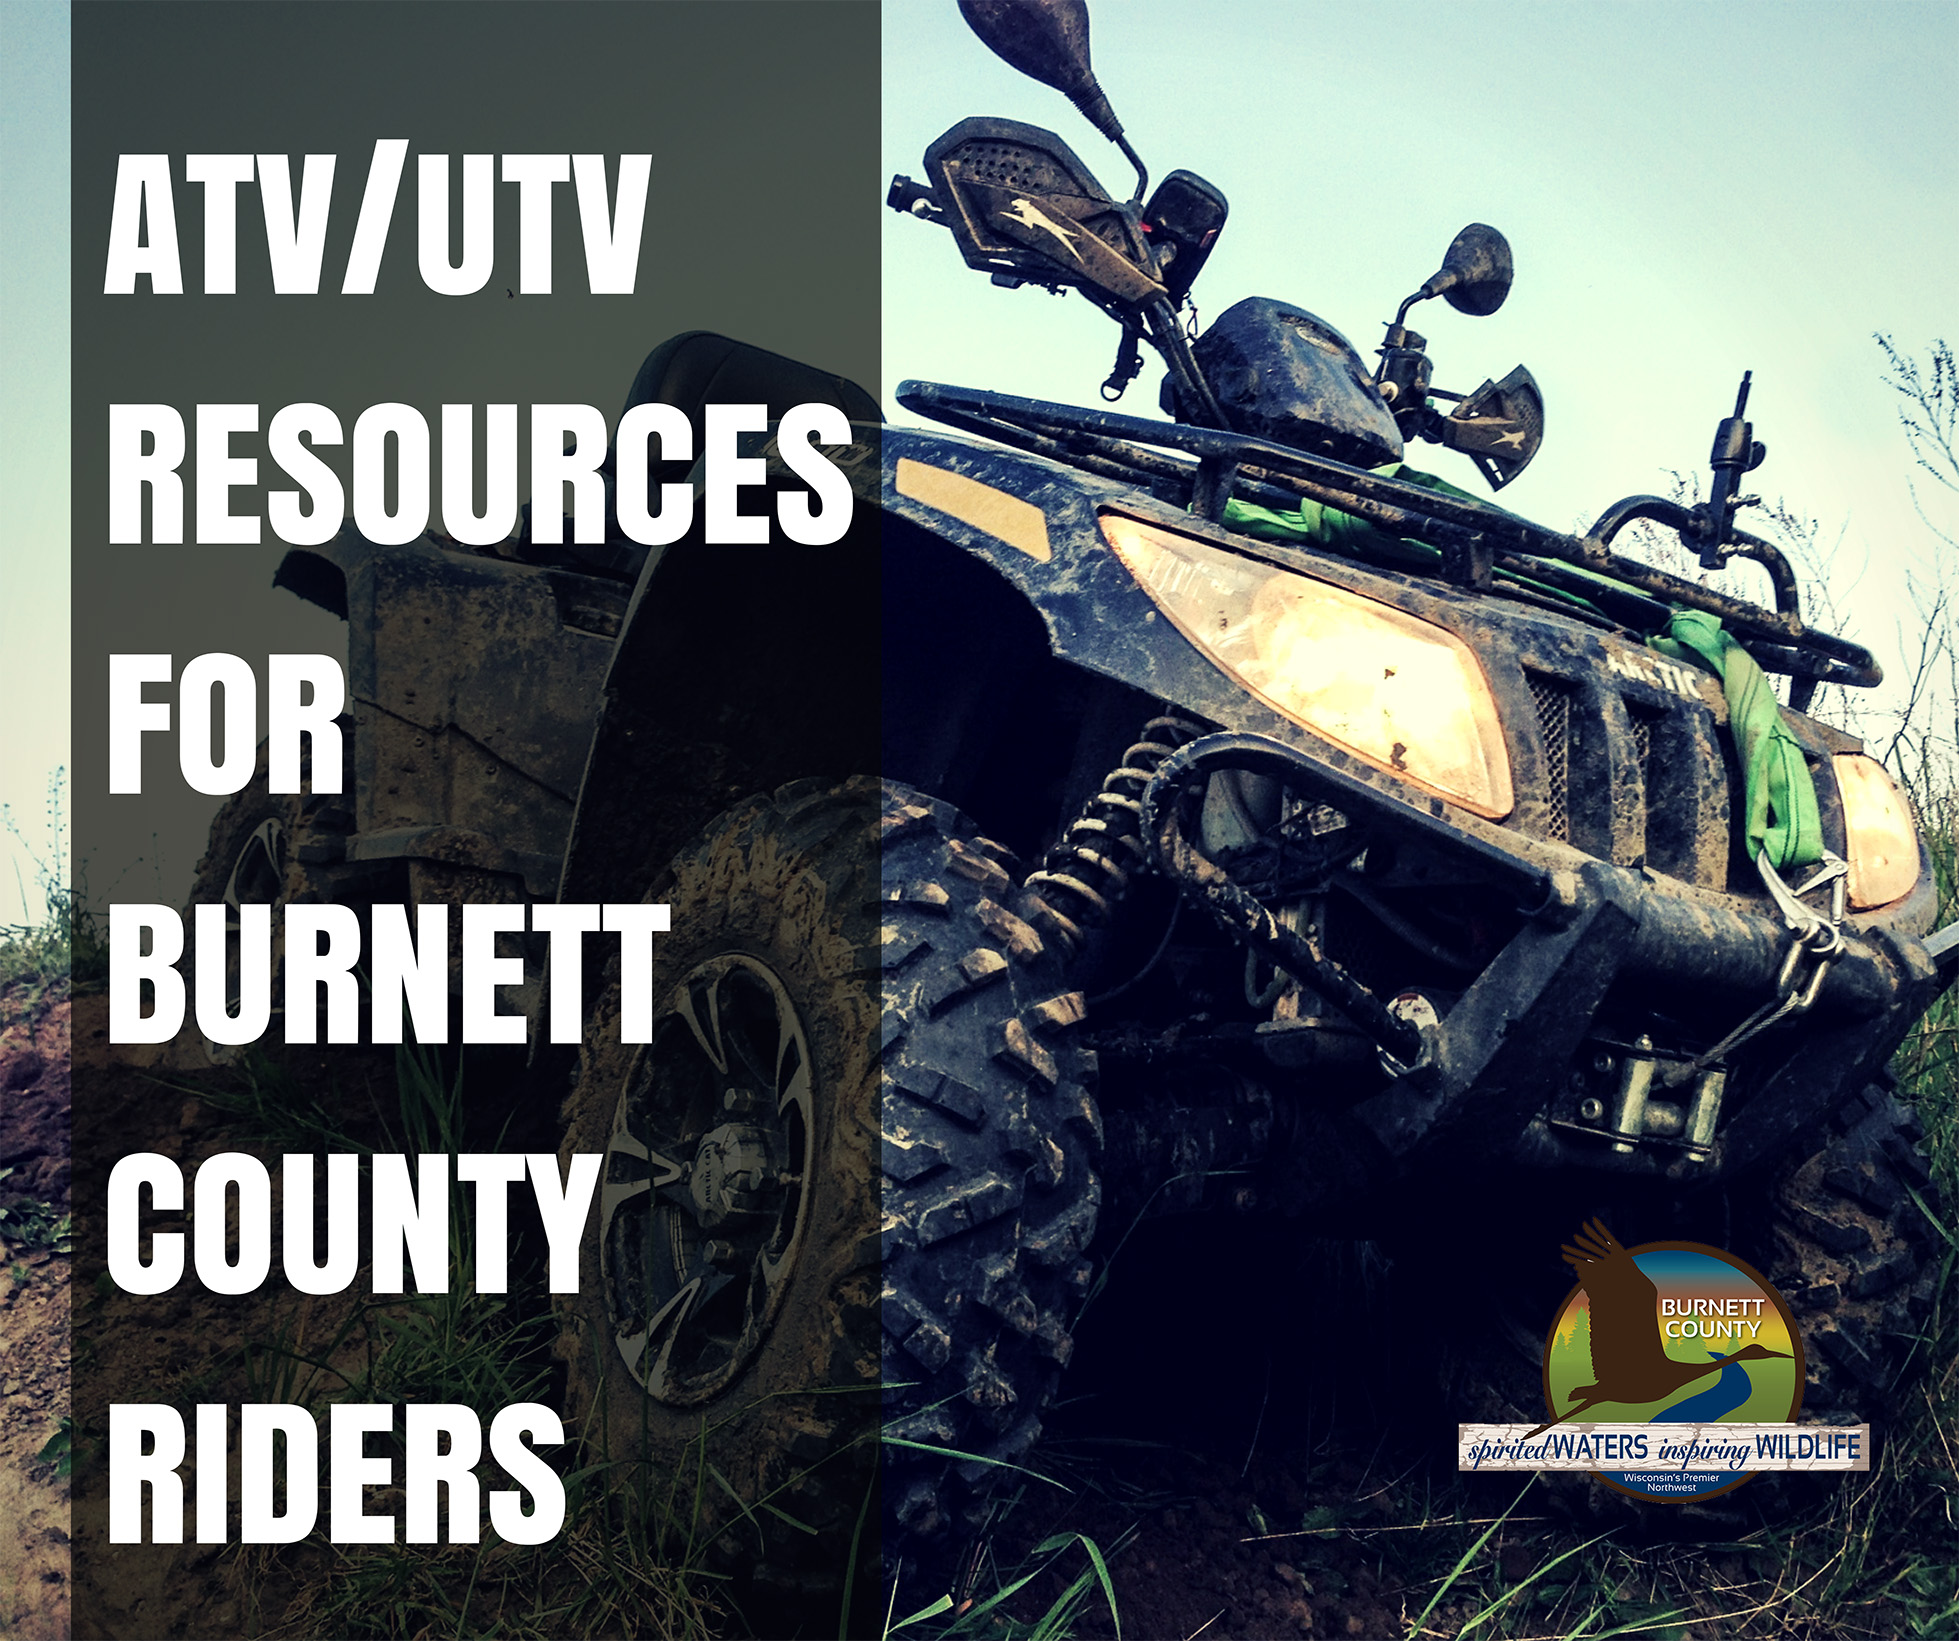 ATV RESOURCESFOR BURNETT COUNTY